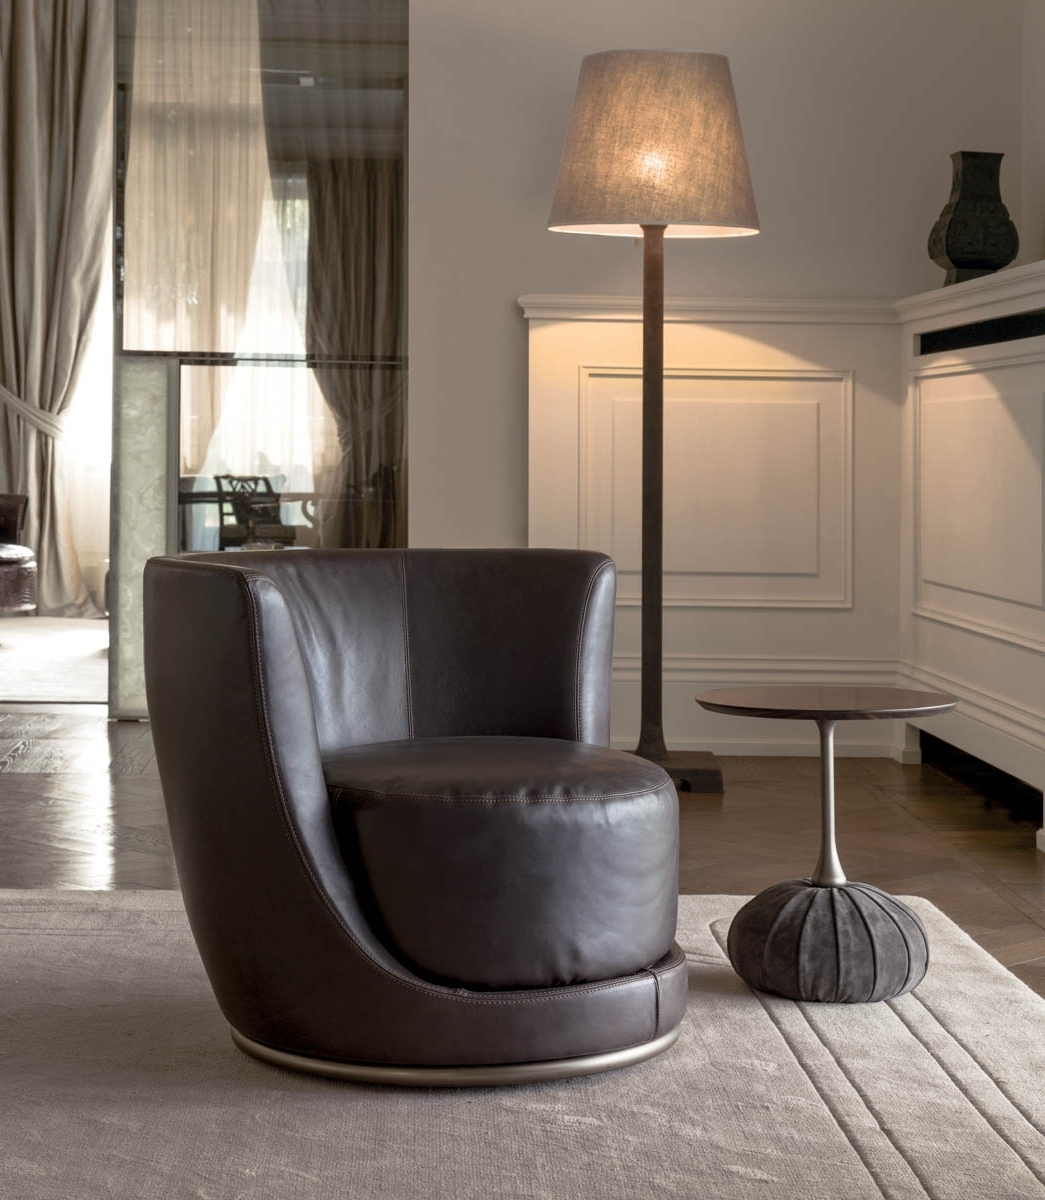 Laurent Armchair – Alveena Casa Pertaining To Latest Laurent Upholstered Side Chairs (Gallery 16 of 20)